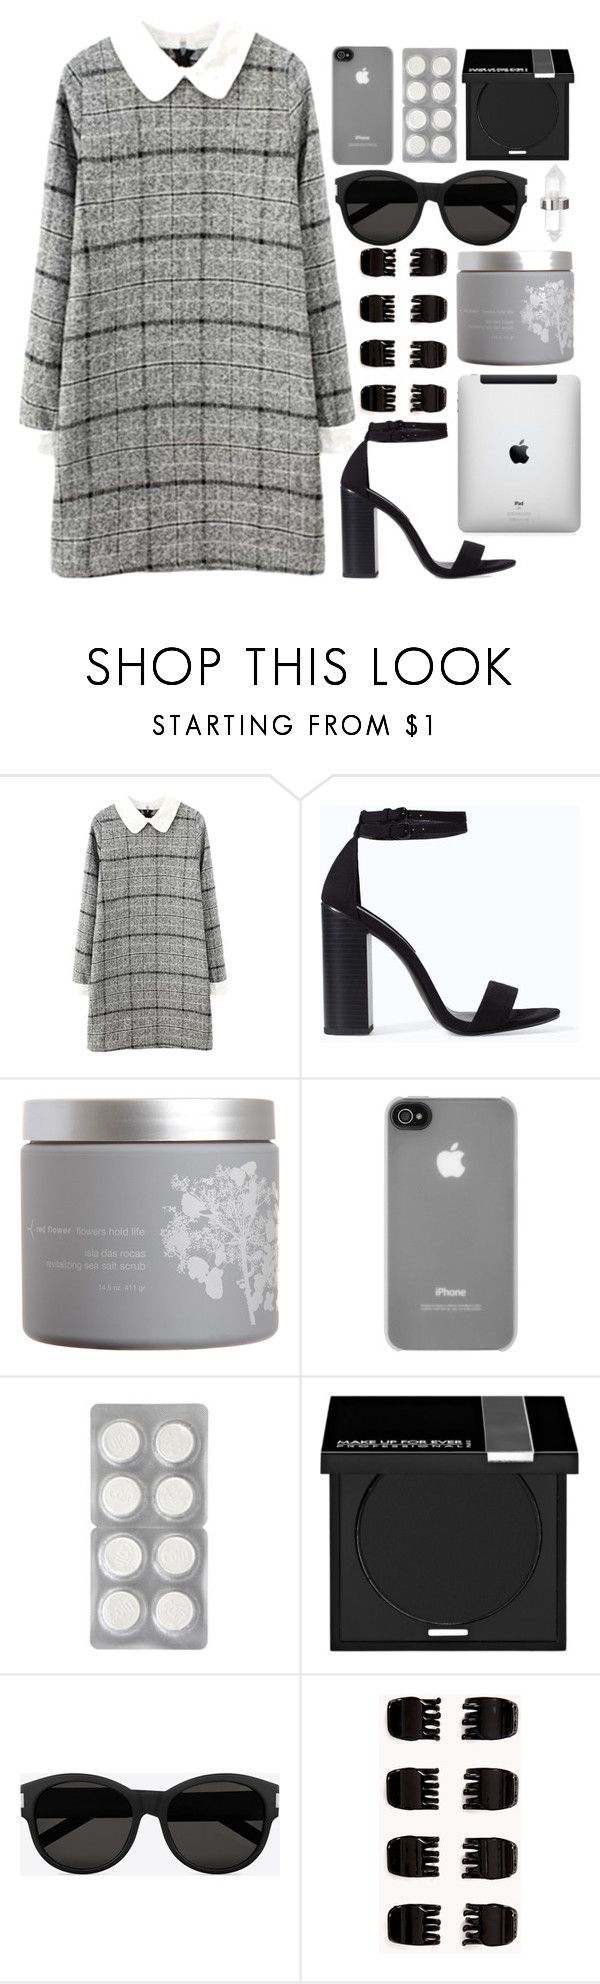 """""""tear in my heart // twenty one pilots"""" by exhalezarry ❤ liked on Polyvore featuring Zara, red flower, Incase, MAKE UP FOR EVER, Yves Saint Laurent, Forever 21 and Amber Sceats"""